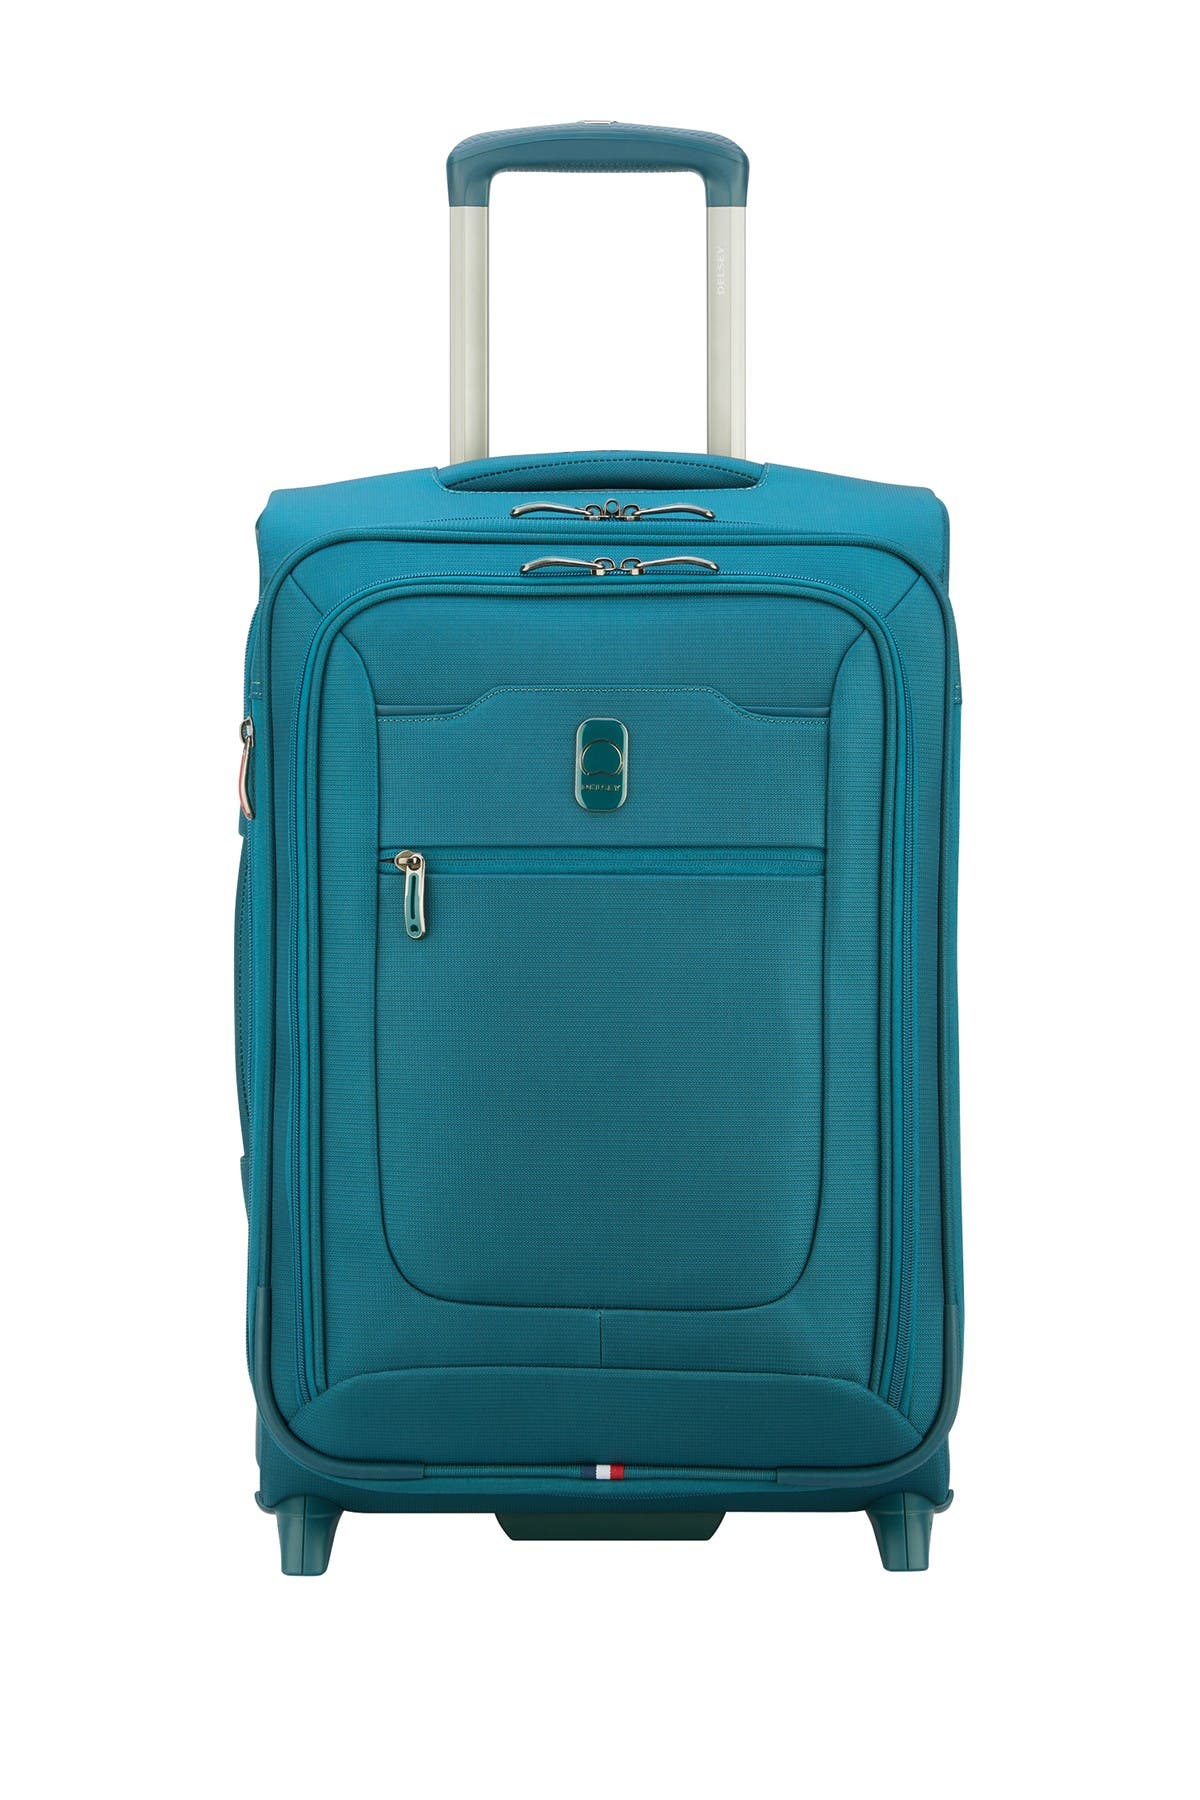 """Delsey Hyperglide 2-wheel 21"""" Carry-on Suitcase In Teal/peacock At Nordstrom Rack"""